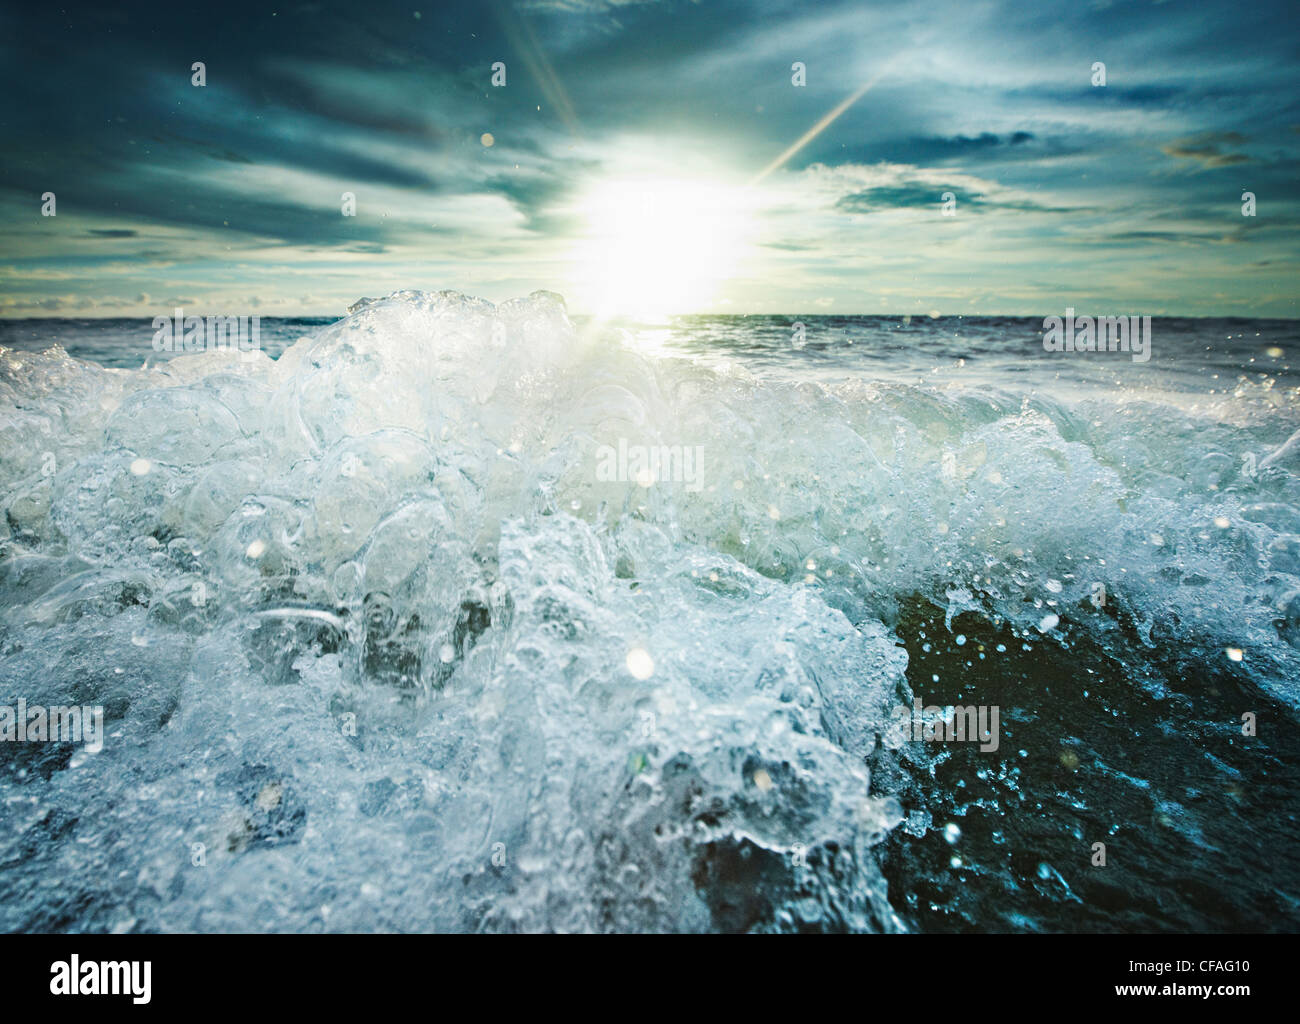 Sun shining over rocky waves - Stock Image